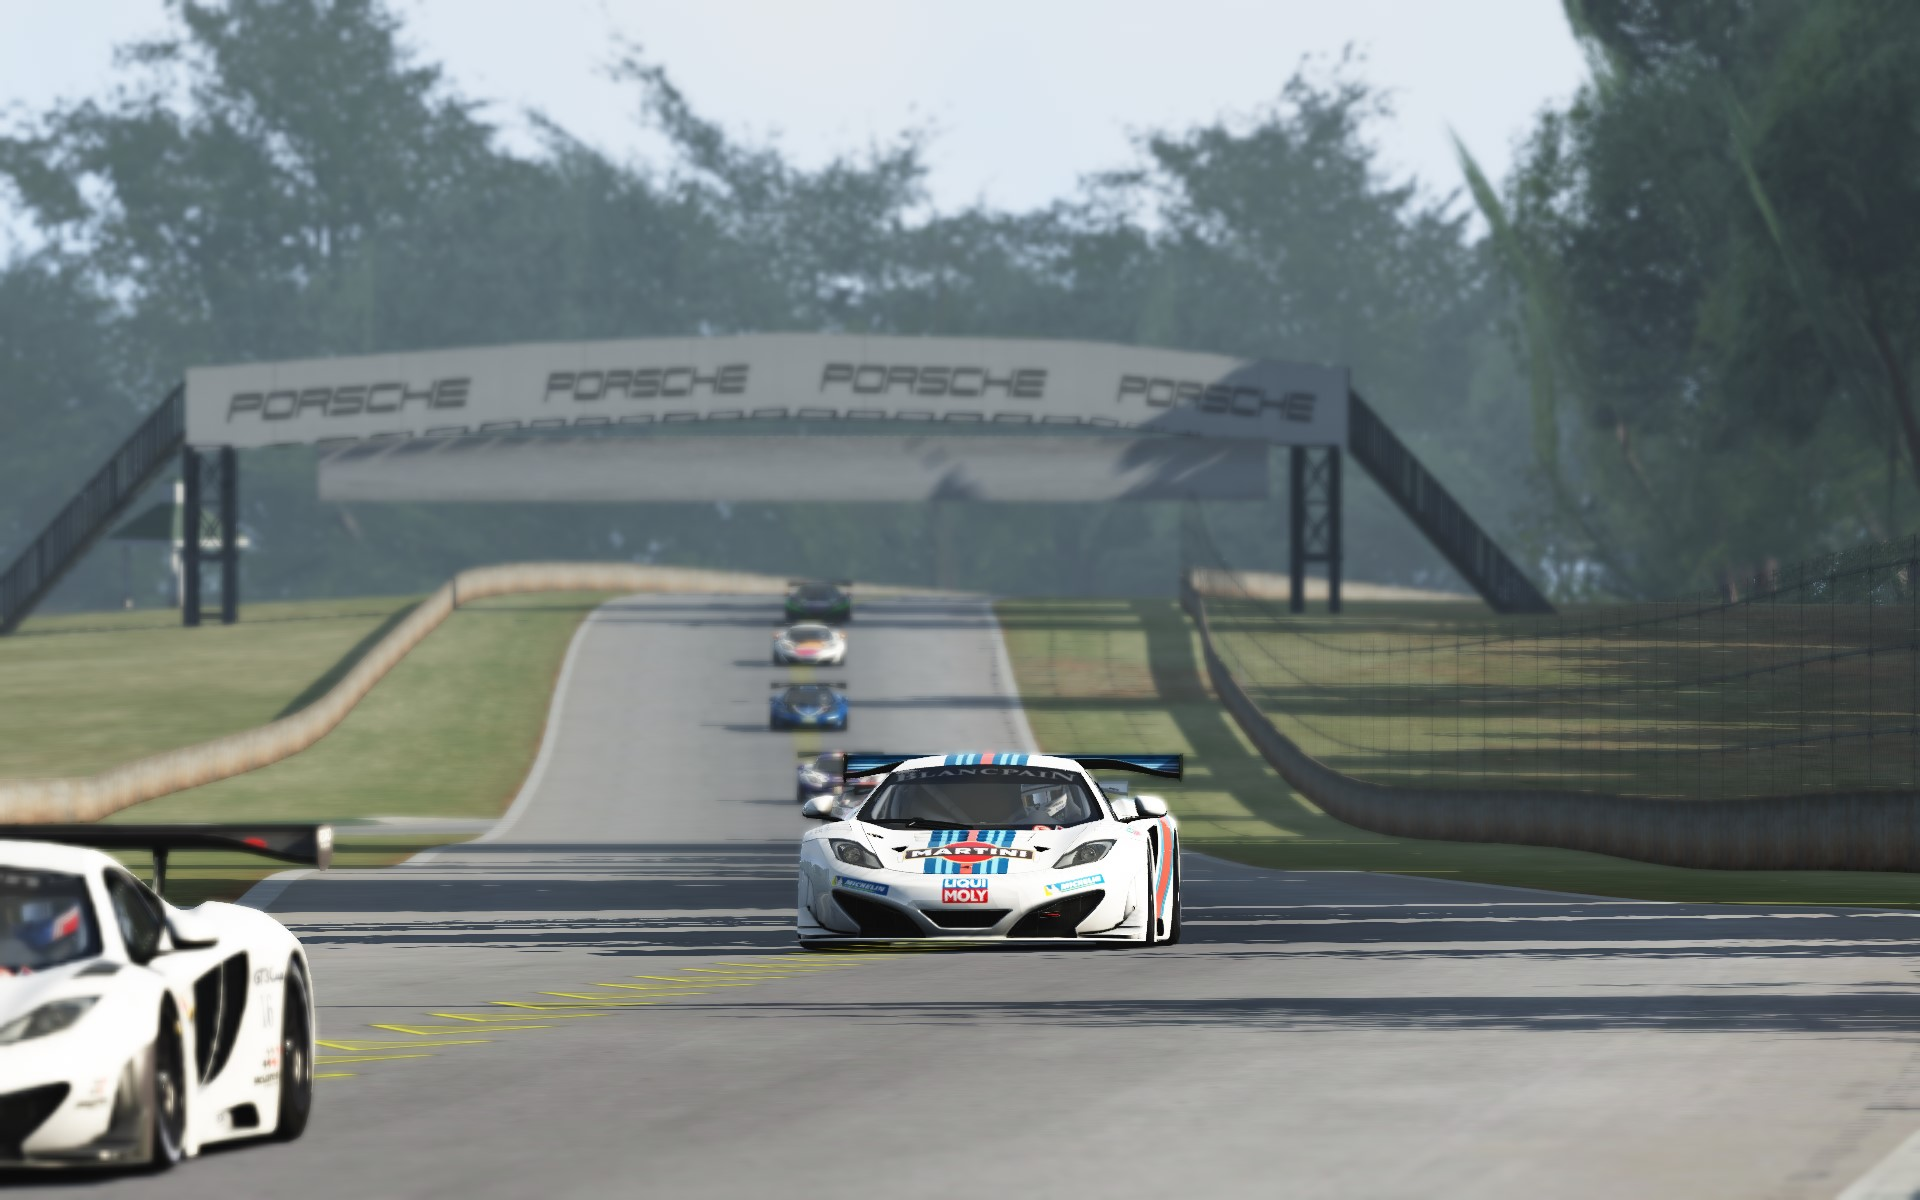 Screenshot_mclaren_mp412c_gt3_road atlanta_10-8-115-14-2-1.jpg